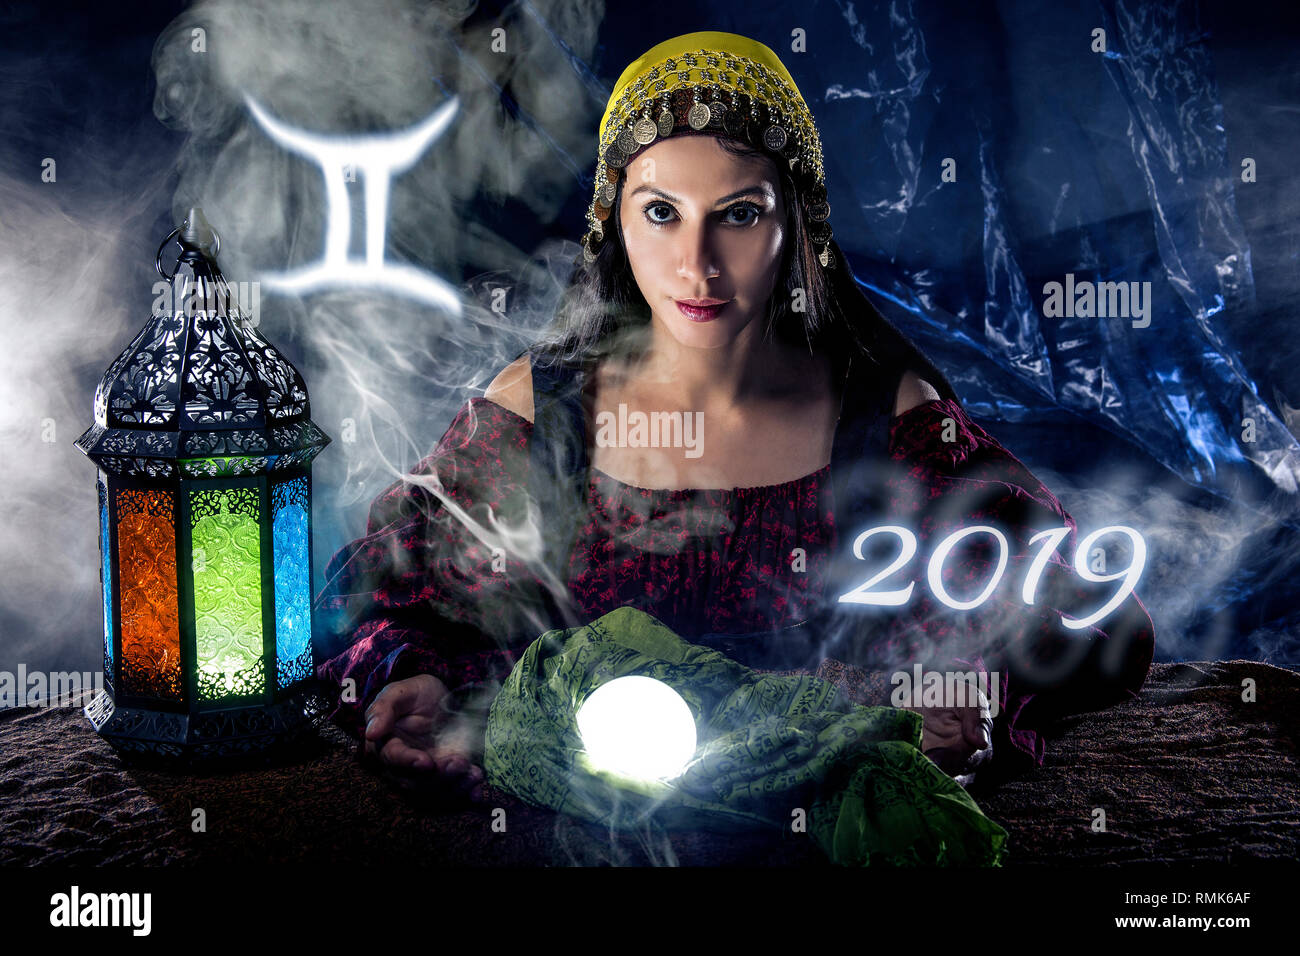 Psychic or fortune teller with crystal ball and horoscope zodiac sign of Gemini - Stock Image